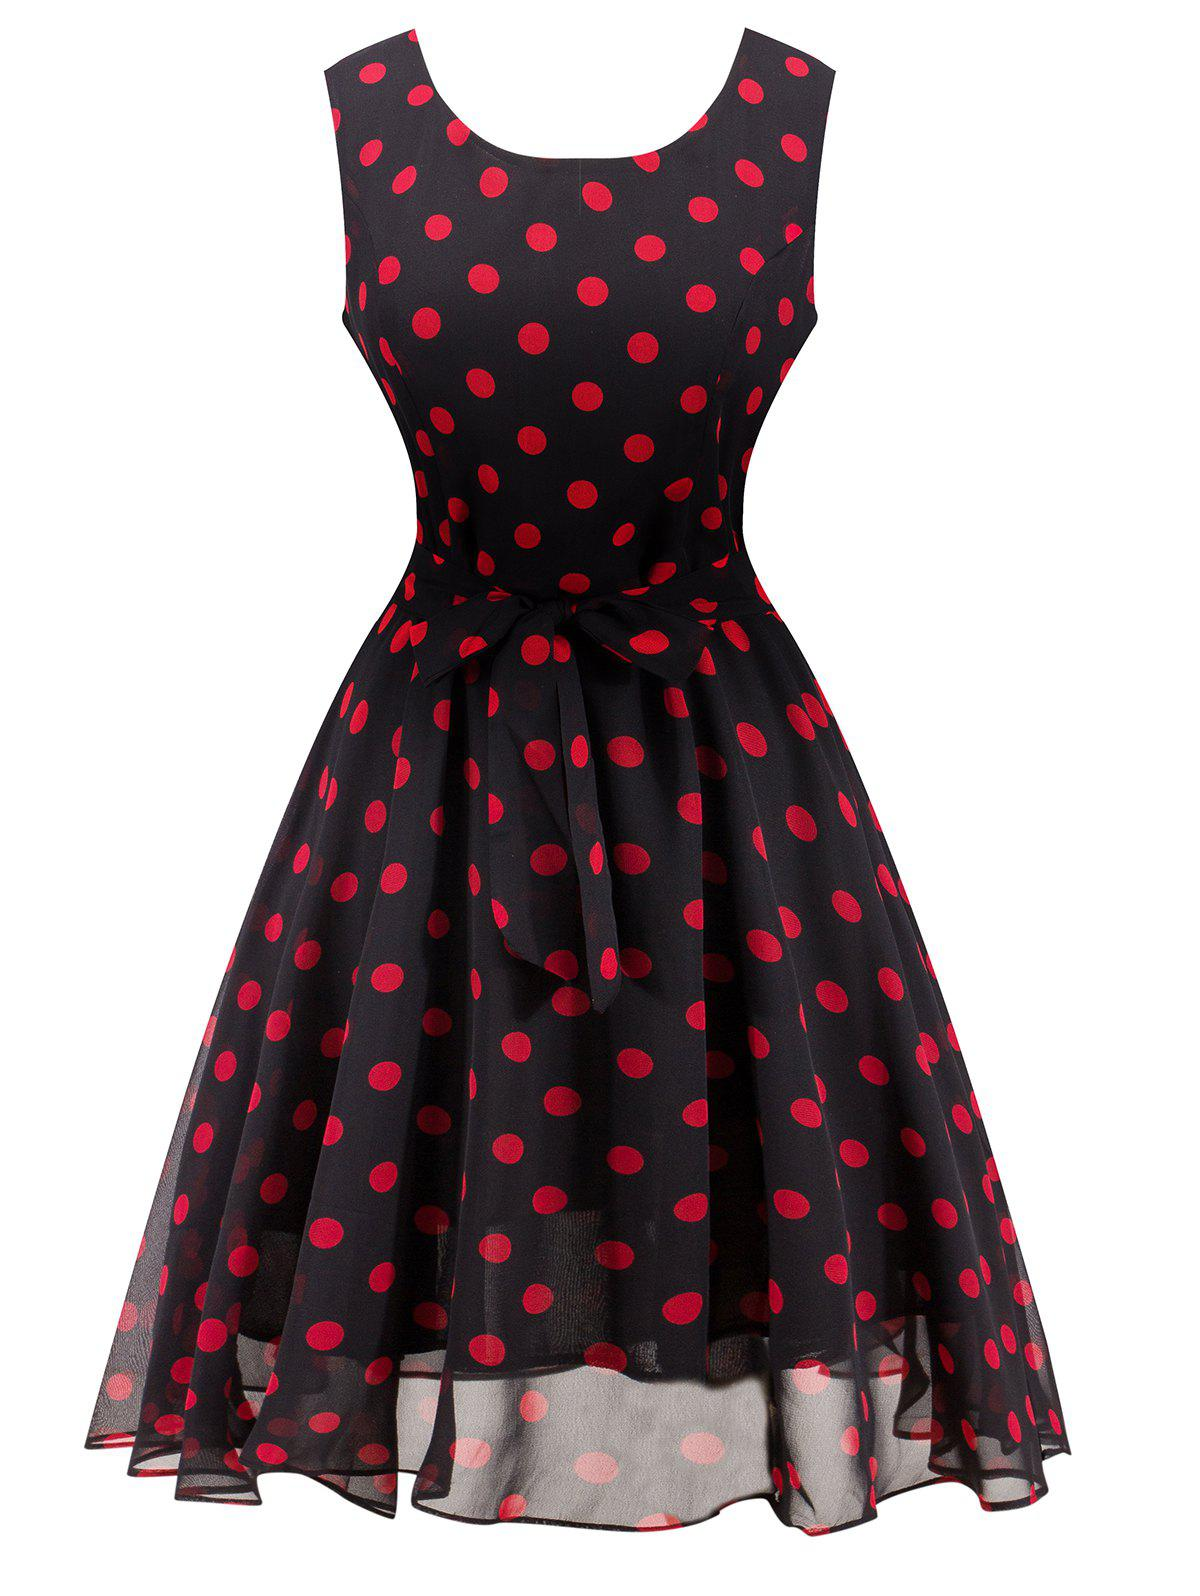 Retro Belted High Waisted Polka Dot Dress - BLACK M